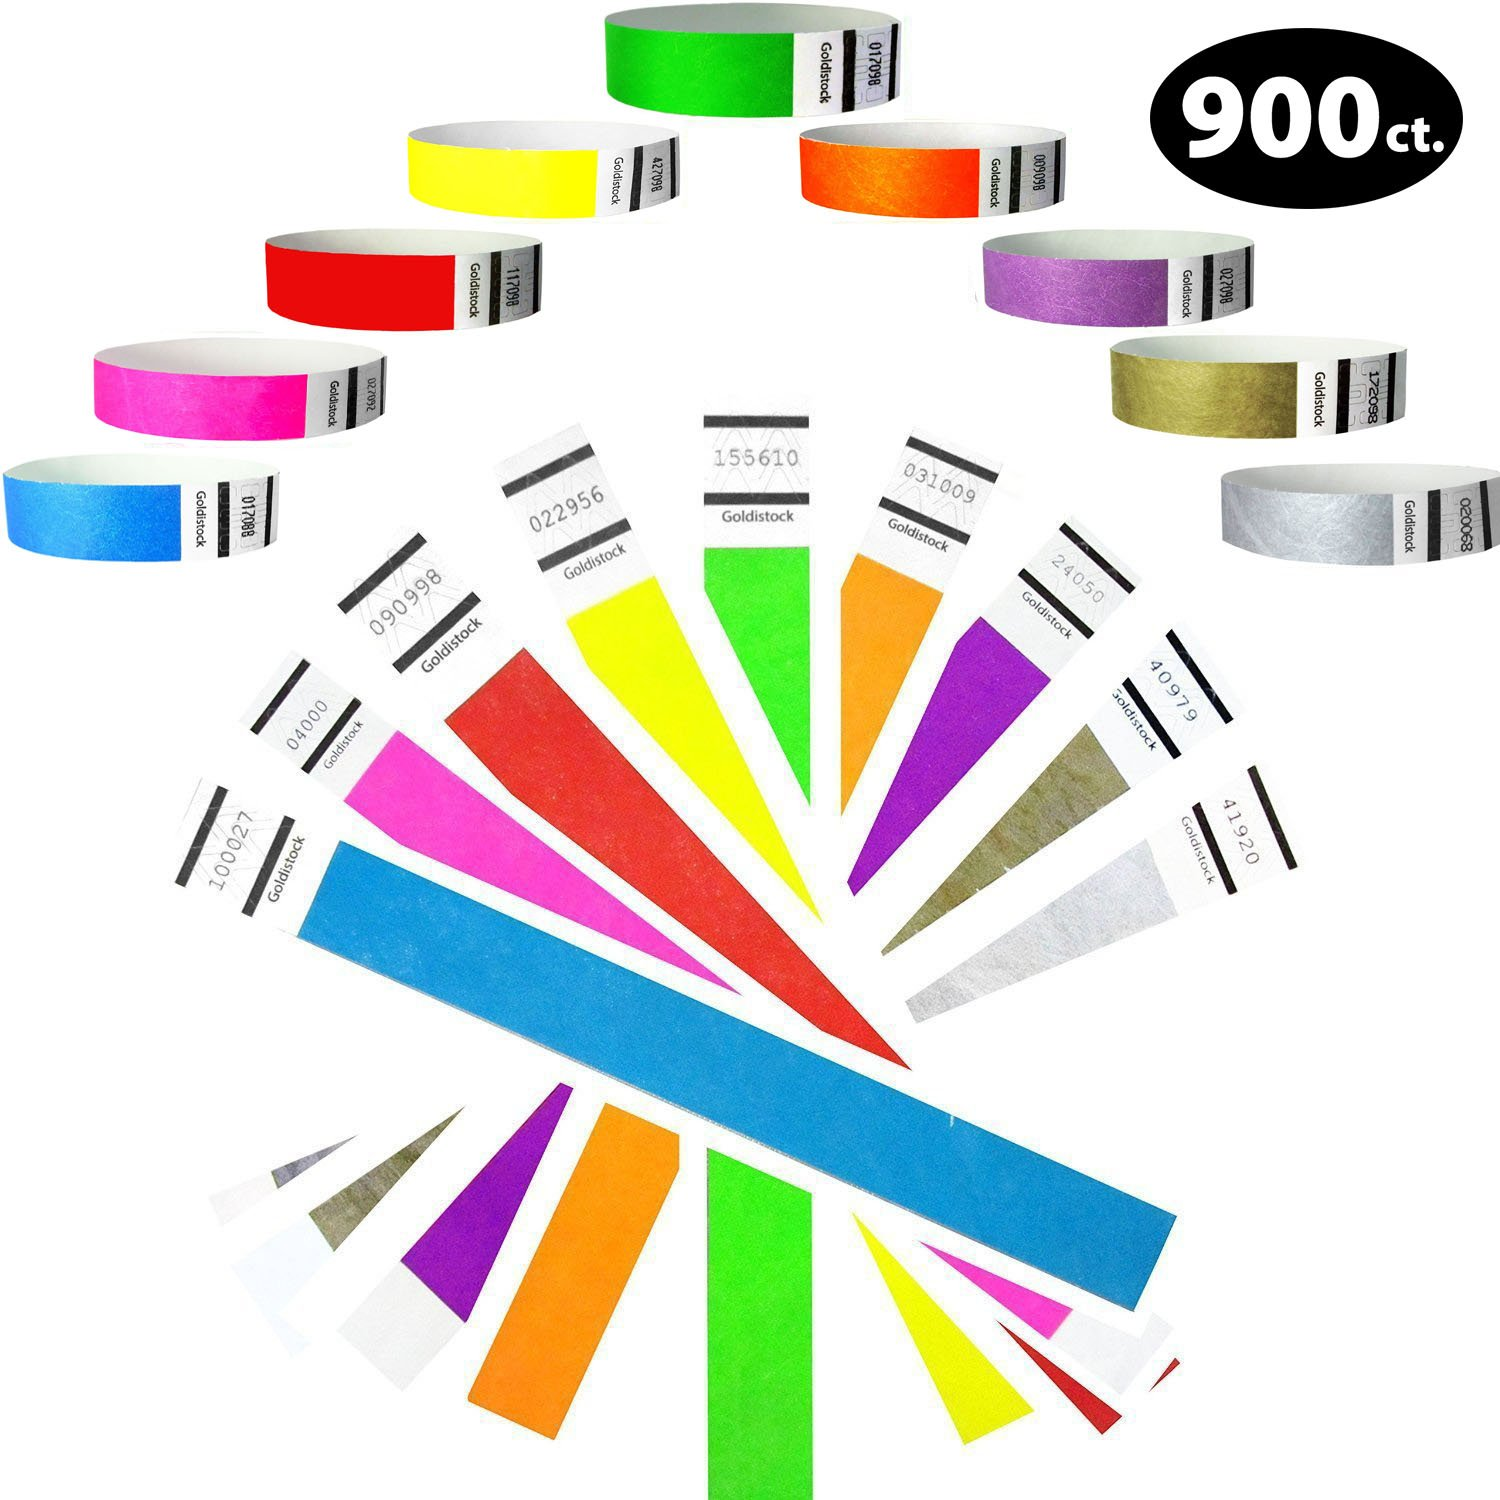 Goldistock 3/4'' Tyvek Wristbands Super Variety Pack 900 Ct. (100 Each): Green, Blue, Red, Orange, Yellow, Pink, Purple, Gold & Silver - 9 Most Popular Colors